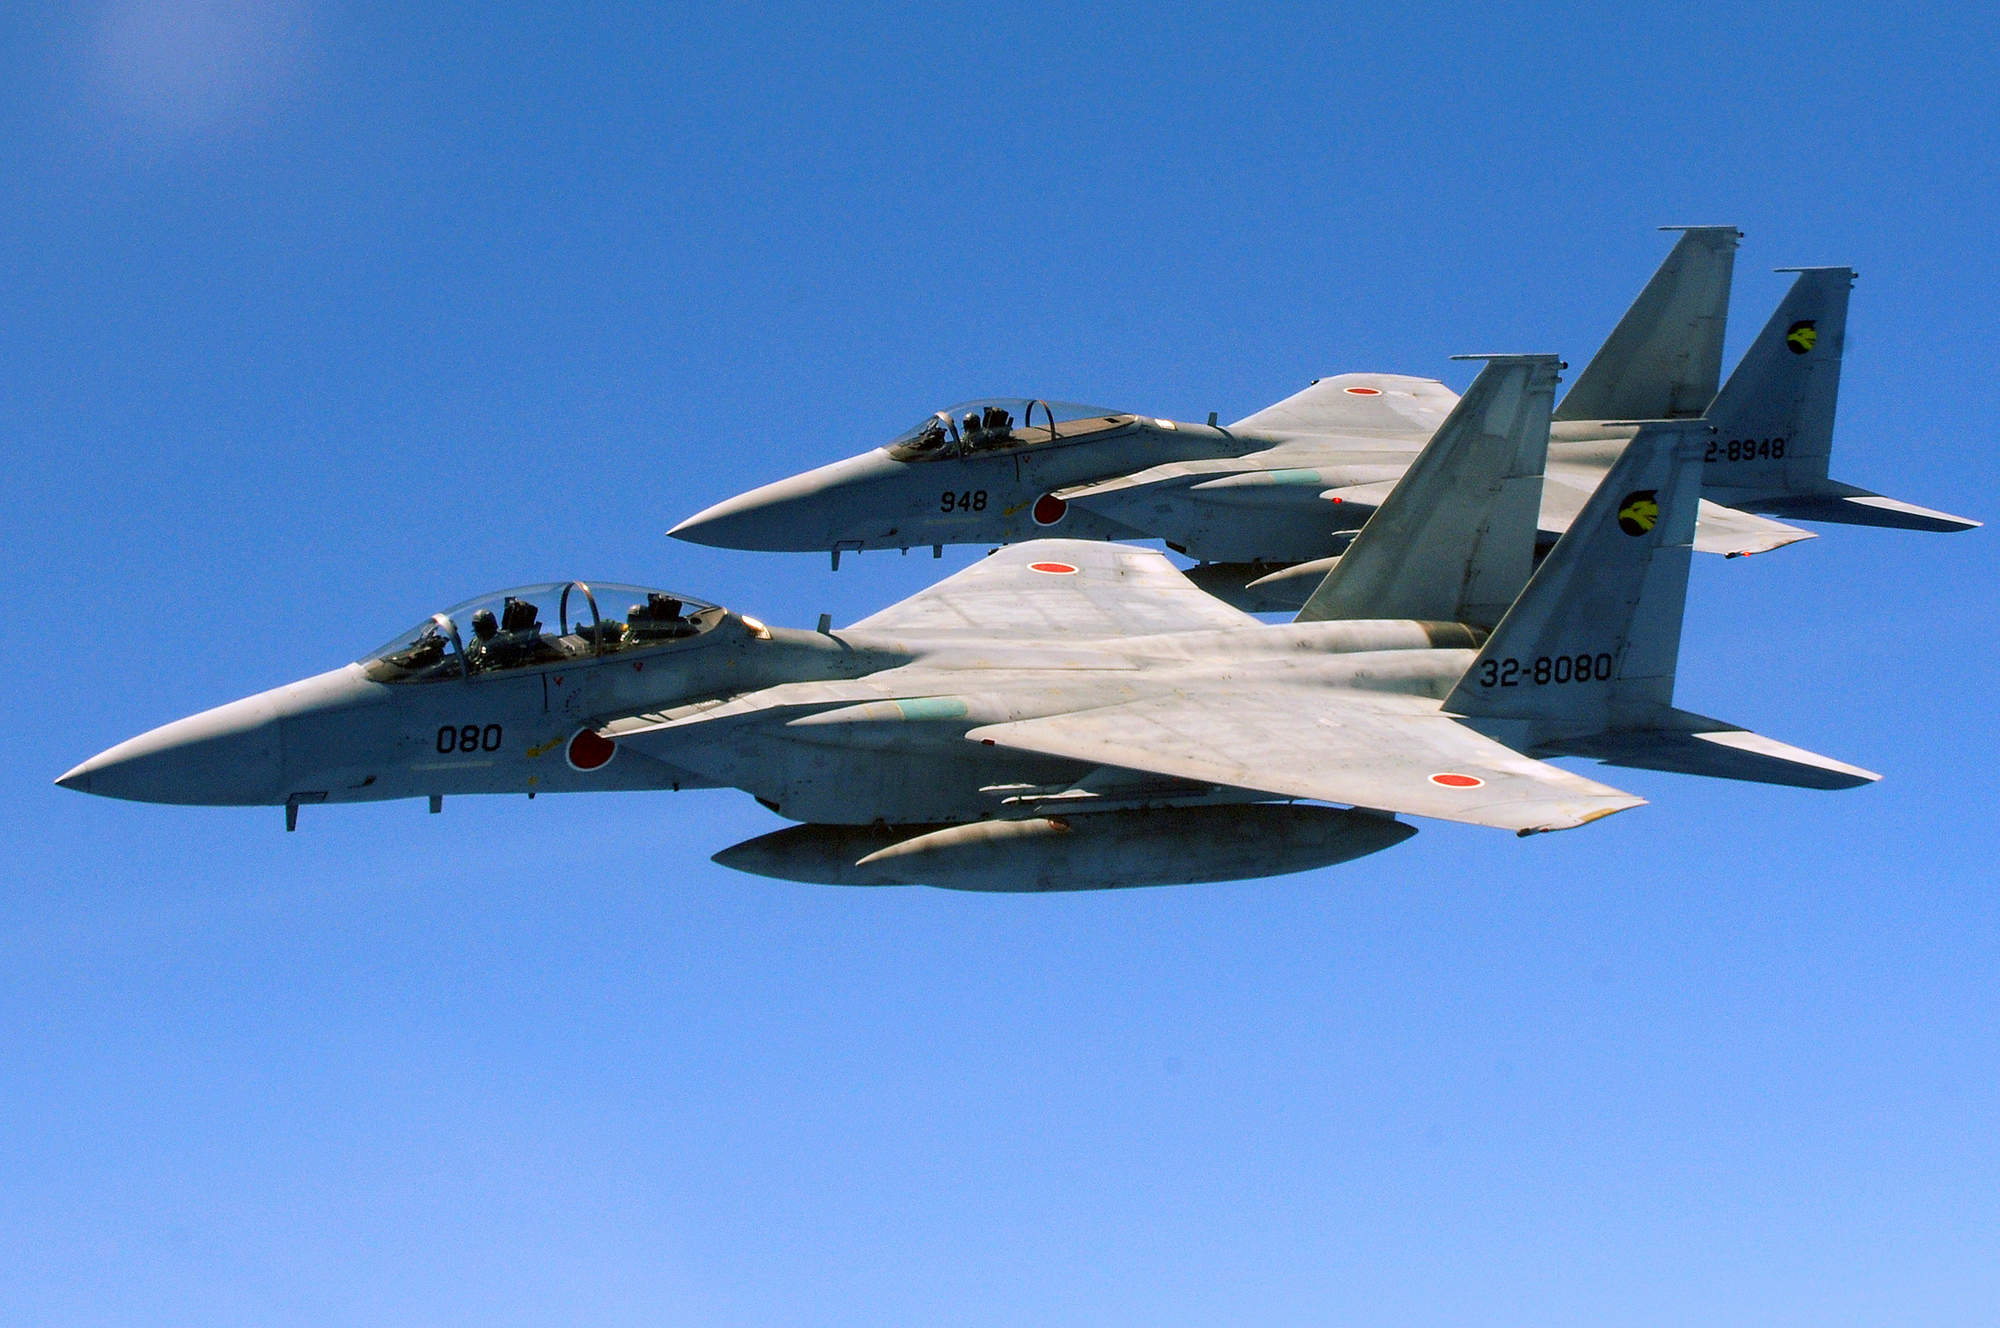 http://upload.wikimedia.org/wikipedia/commons/f/ff/Two_Japan_Air_Self_Defense_Force_F-15_jets.jpg